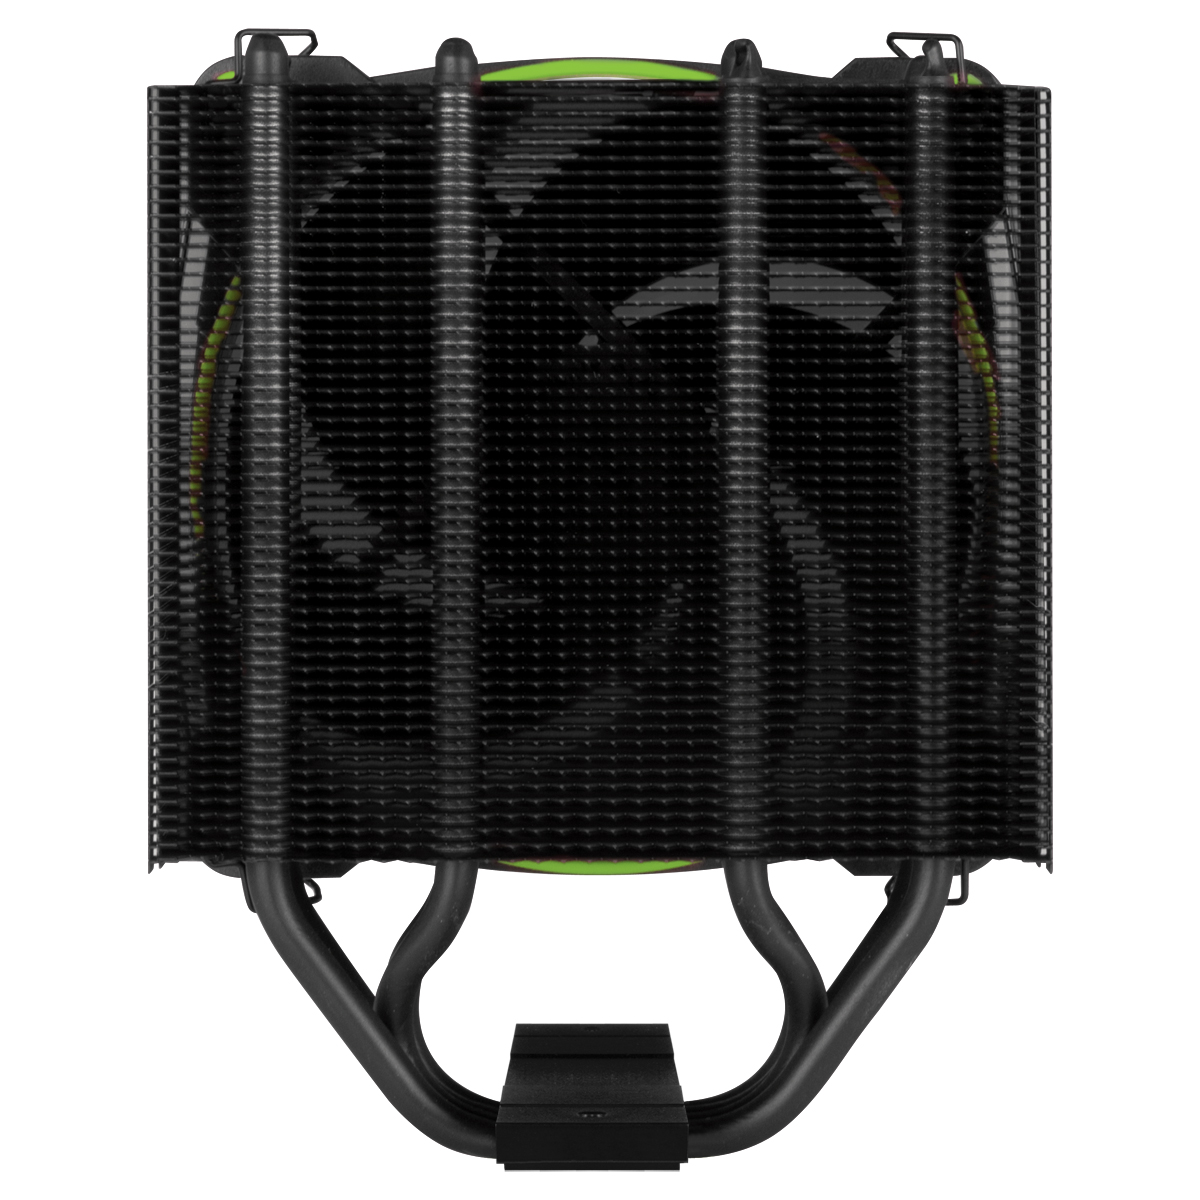 Tower CPU Cooler with BioniX P-Fan ARCTIC Freezer 34 eSports (Green) Rear View